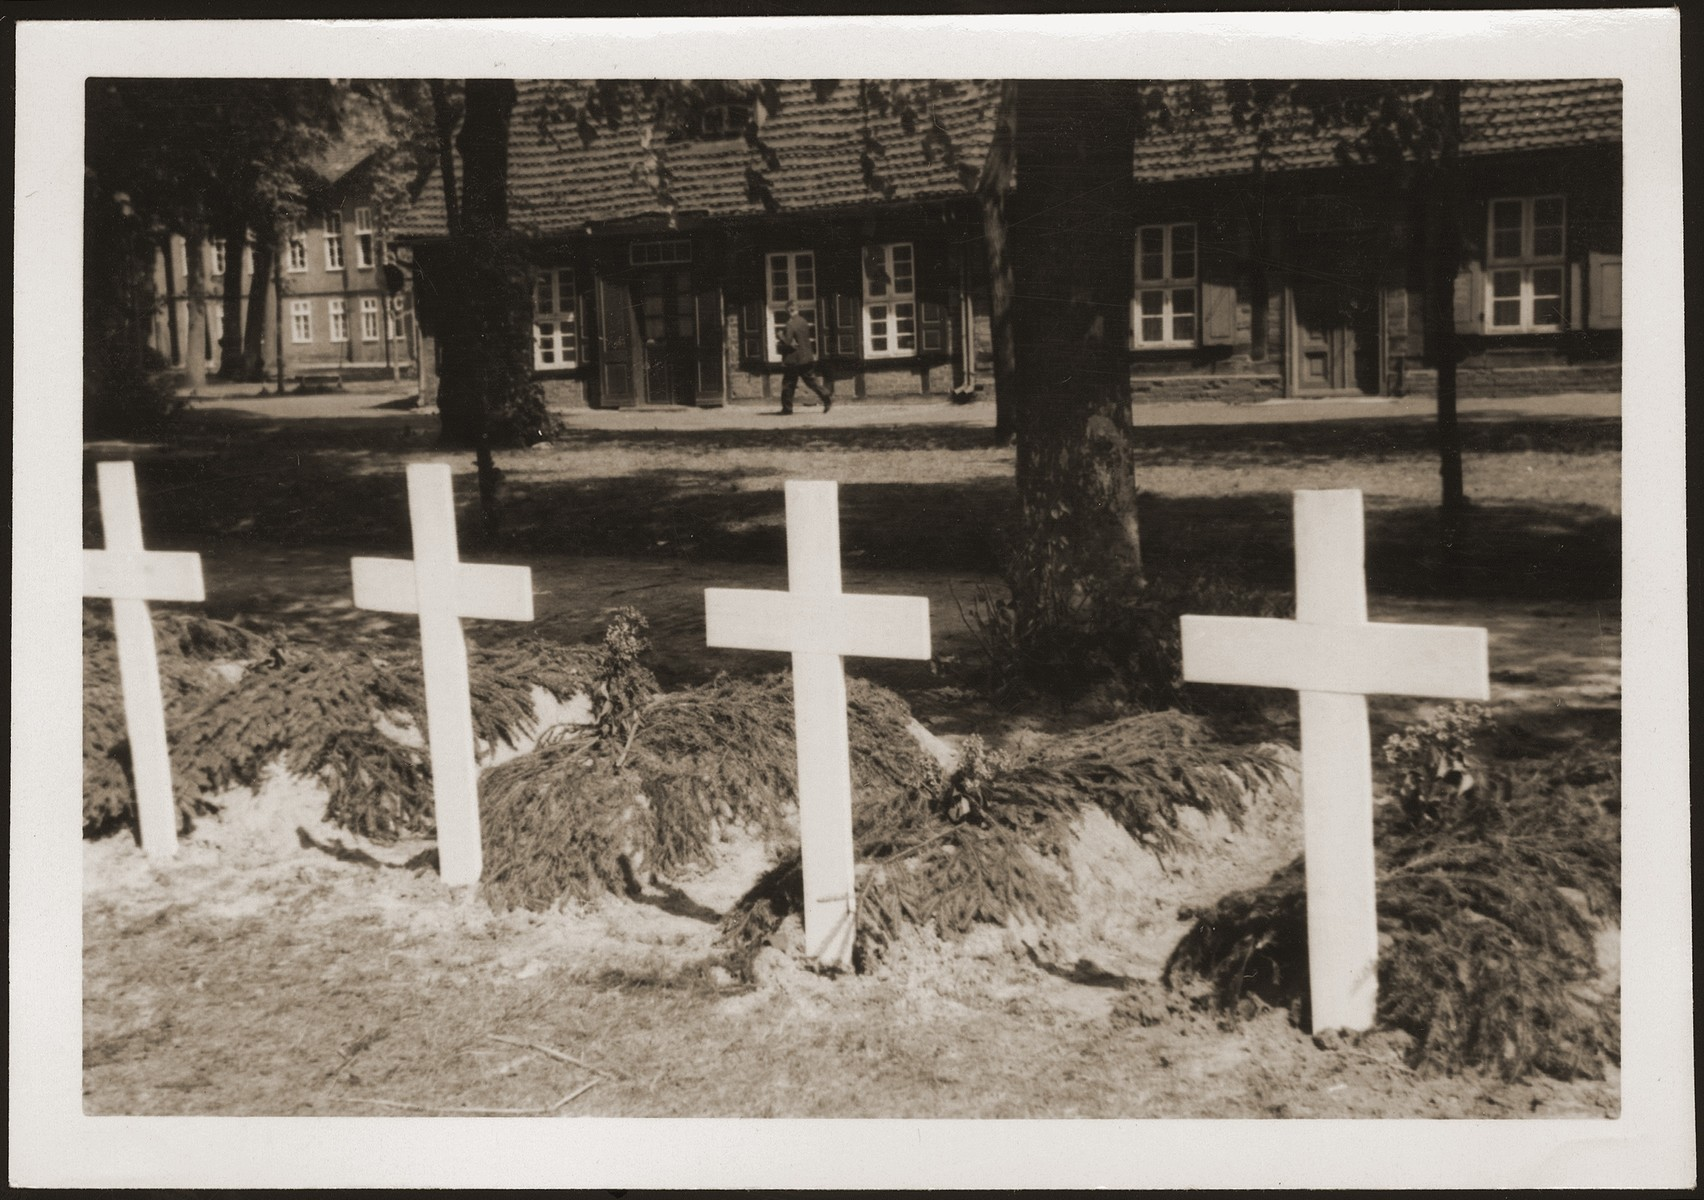 Graves dug by the people of Ludwigslust on the palace grounds of the Archduke of Mecklenburg, where they have been forced by U.S. troops to bury the bodies of prisoners killed in the Woebbelin concentration camp.